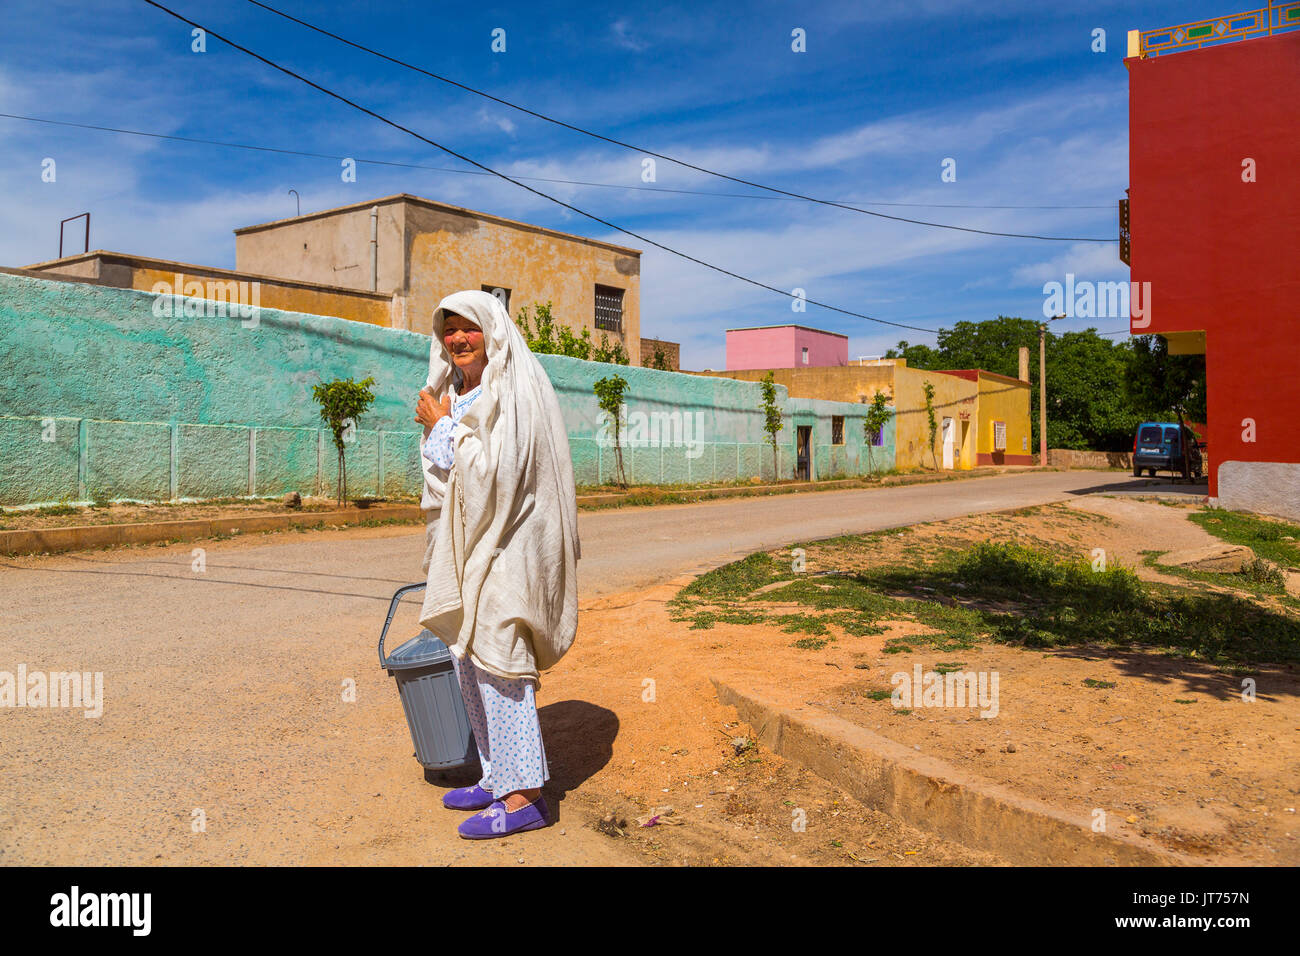 Bhalil, woman in white dress covering her head. Morocco, Maghreb North Africa - Stock Image